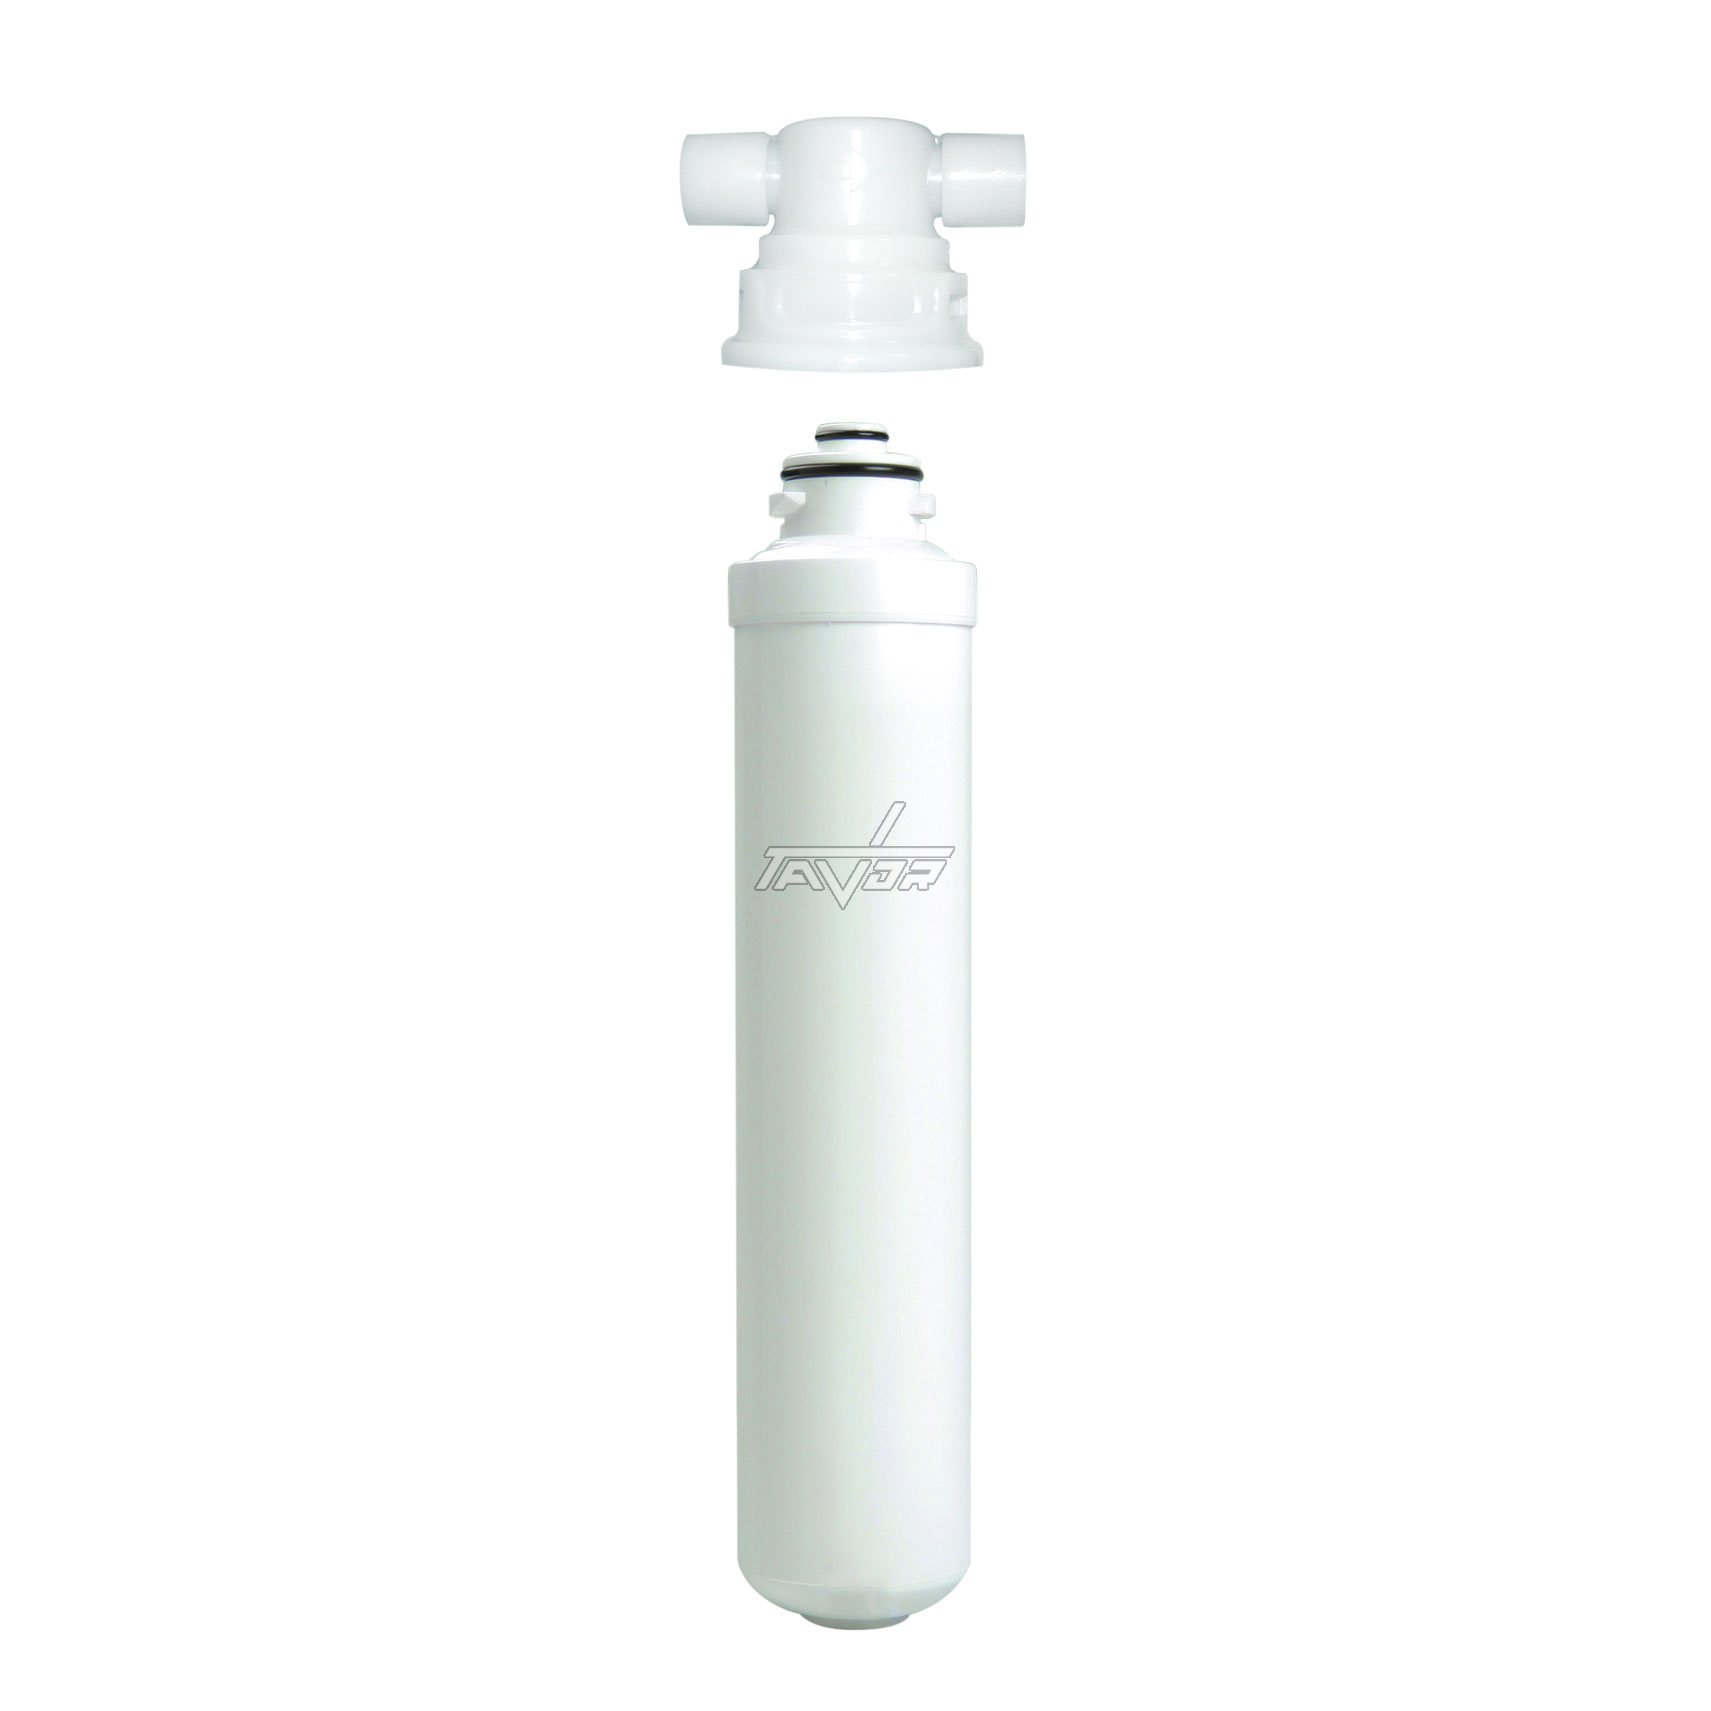 WATER FILTER U-1 WITH CHARCOAL CARBON AND POLYPHOSPHATE - MICROFILTER